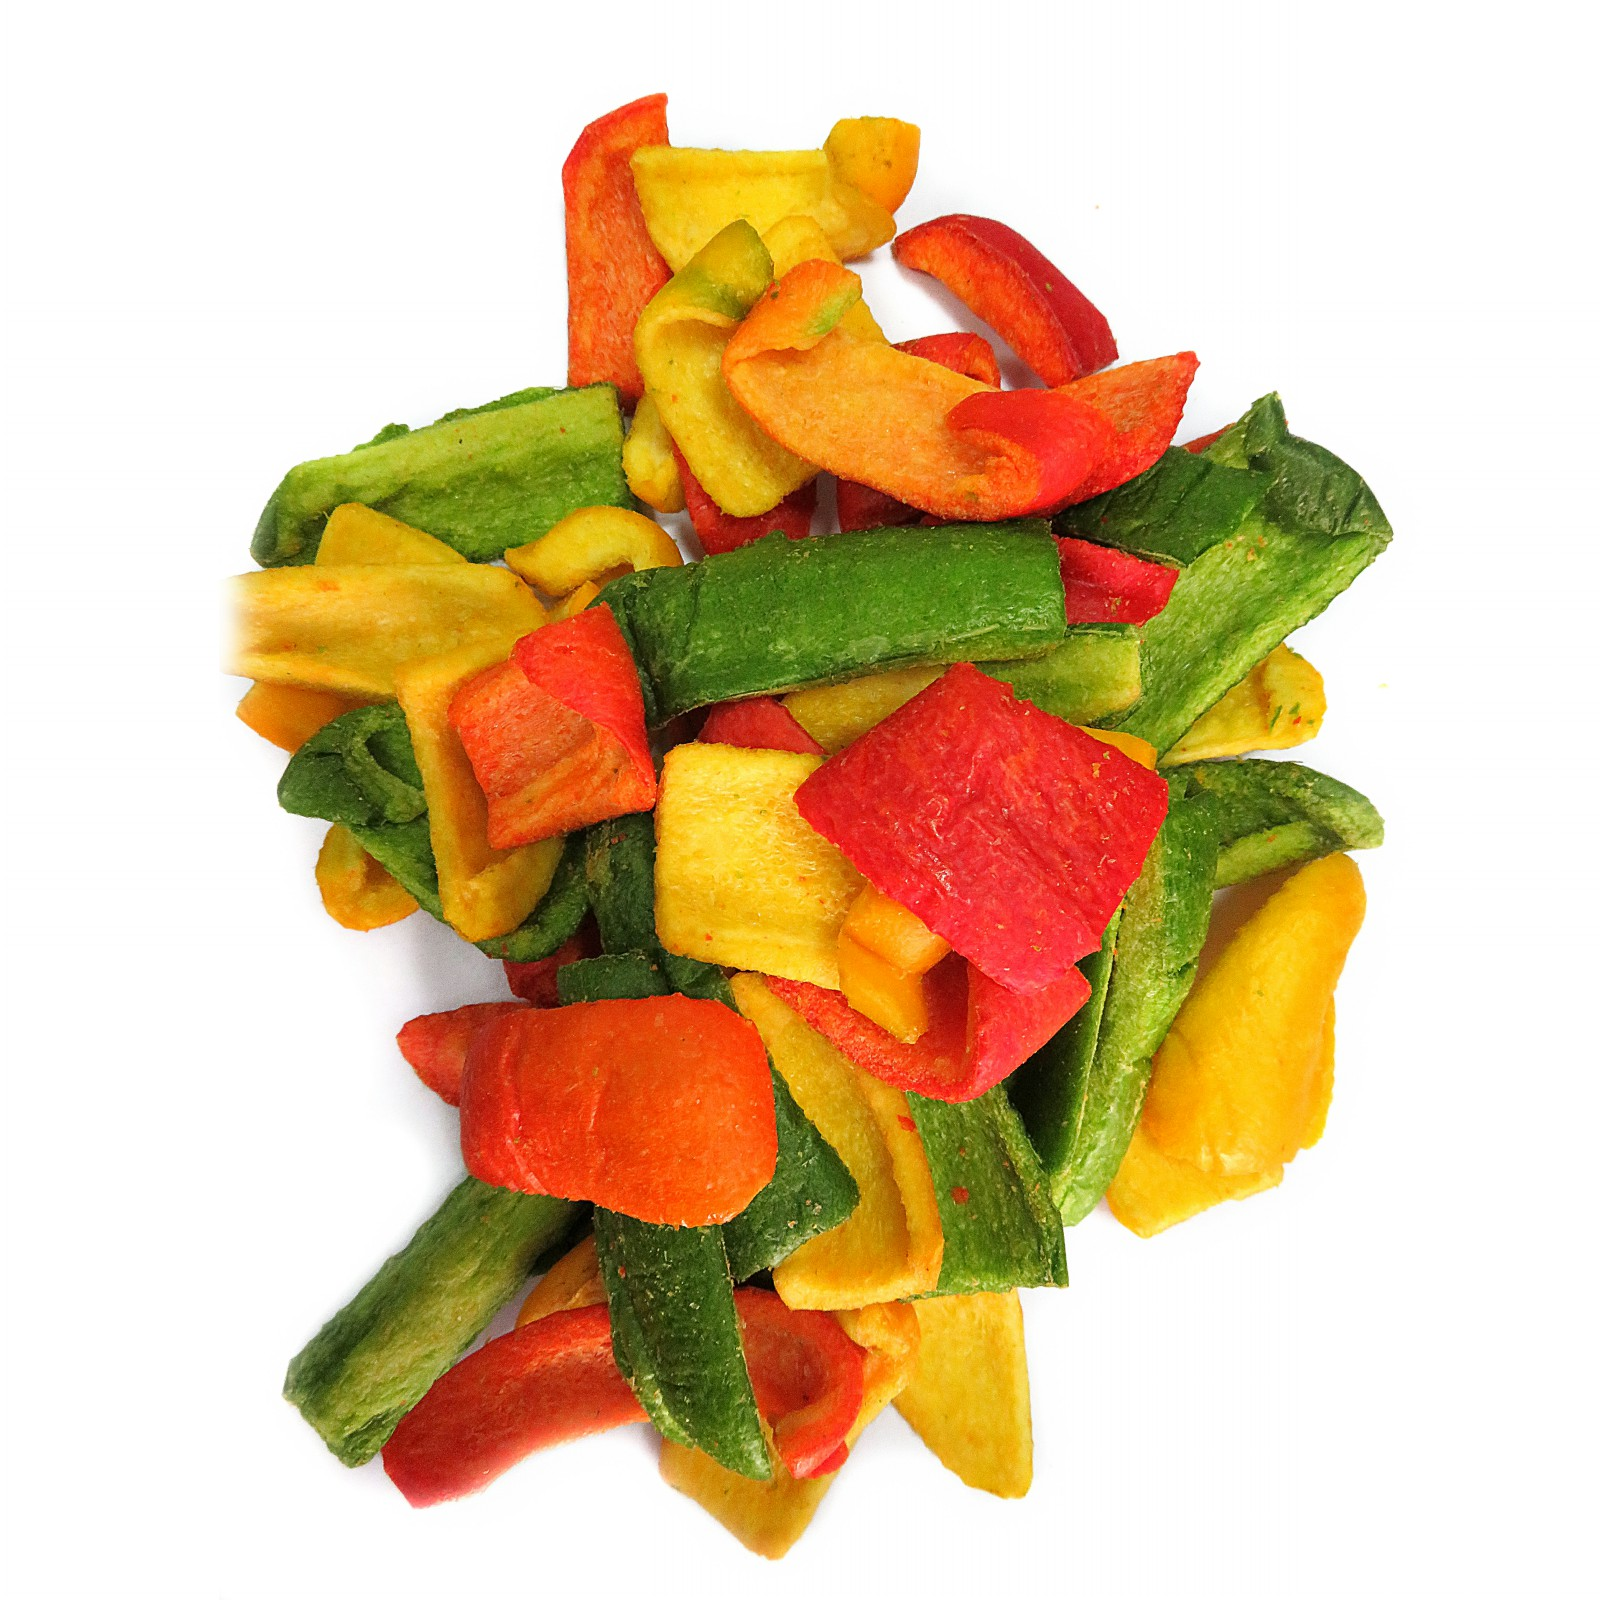 VF fruit & vegetable chips